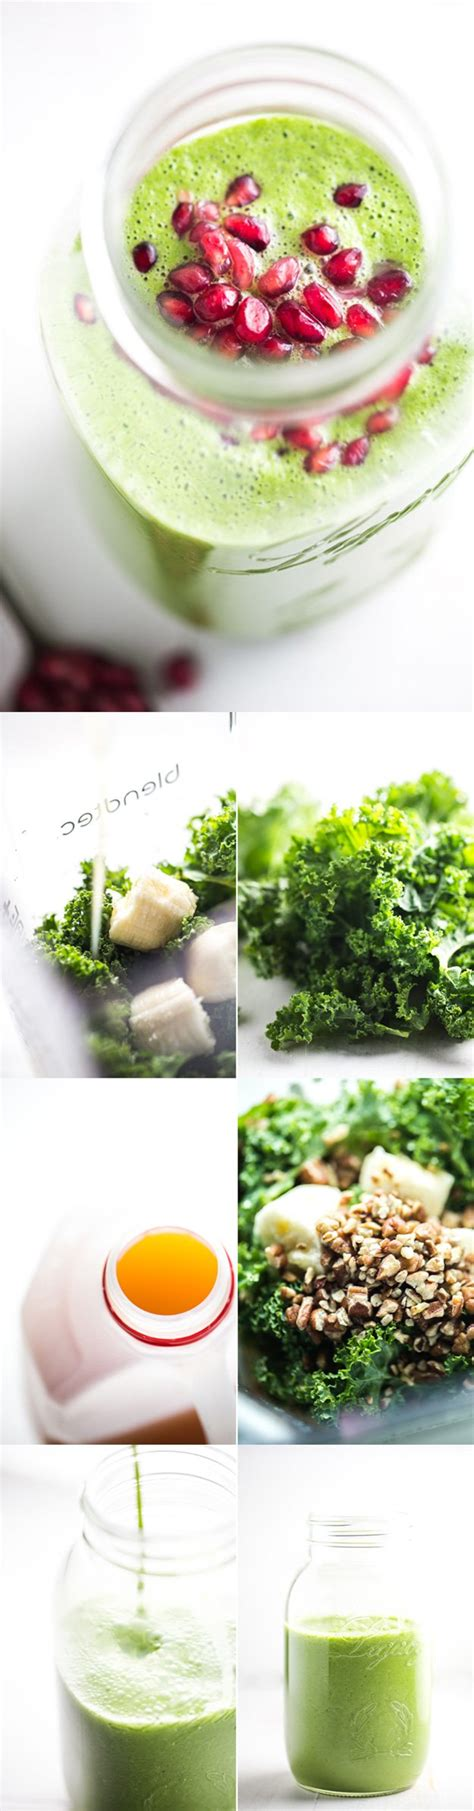 Detox Smoothie Recipes For Energy by Detoxifying Energy Boosting Smoothies Diy Projects Craft